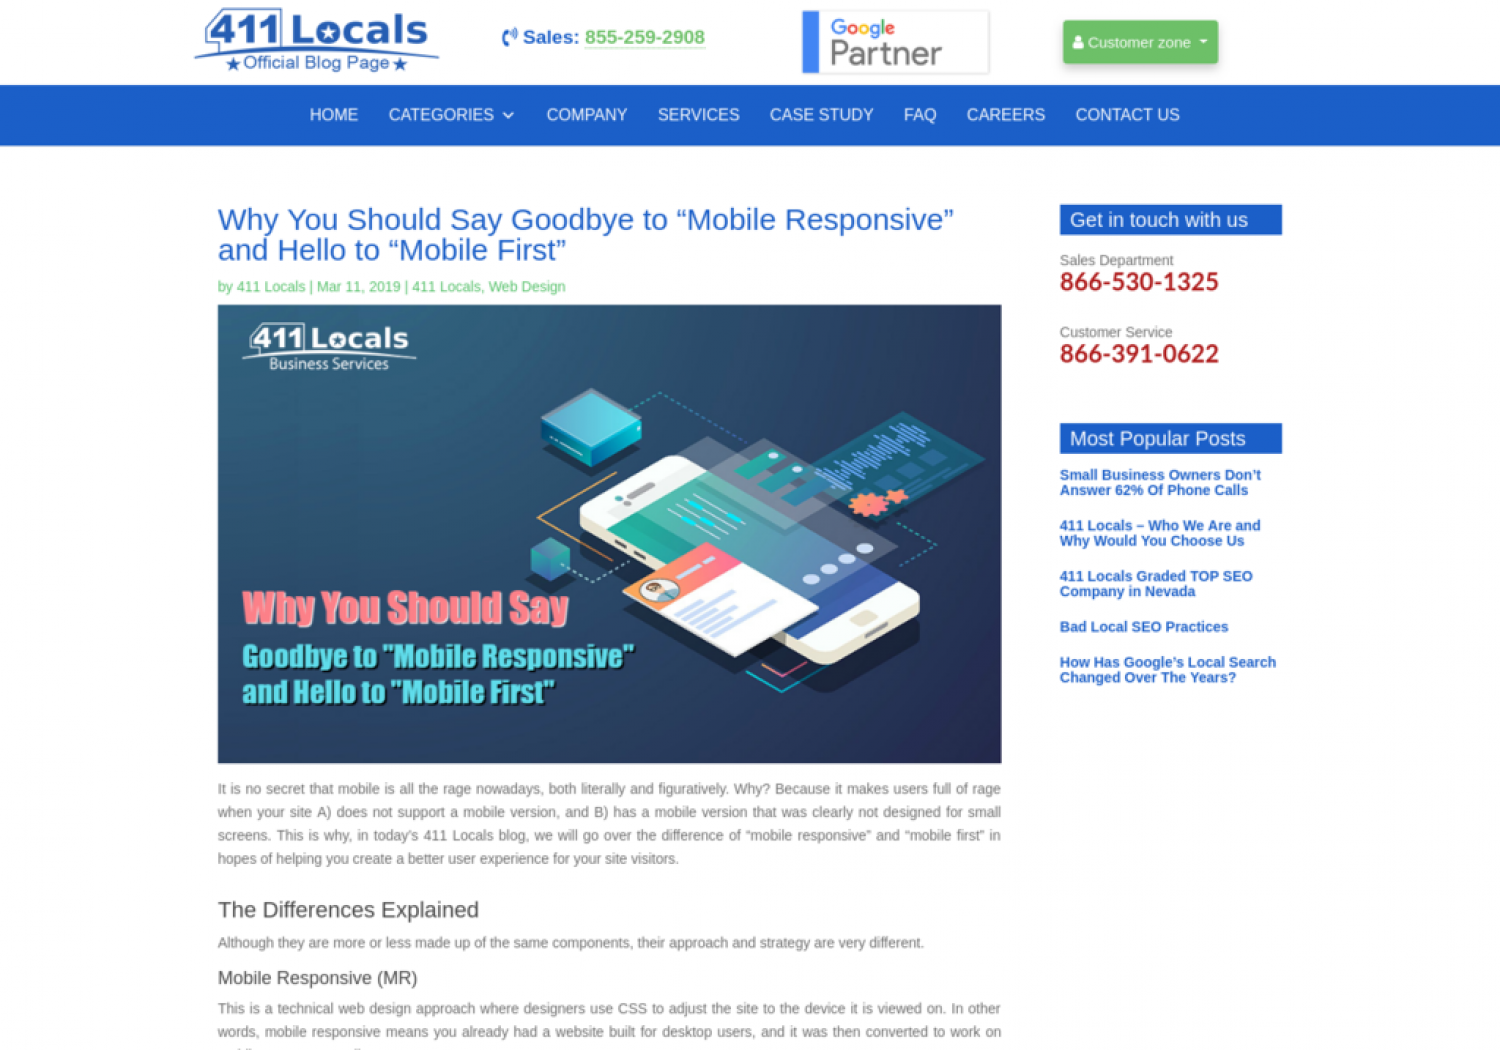 """Why You Should Say Goodbye to """"Mobile Responsive"""" and Hello to """"Mobile First"""" Infographic"""